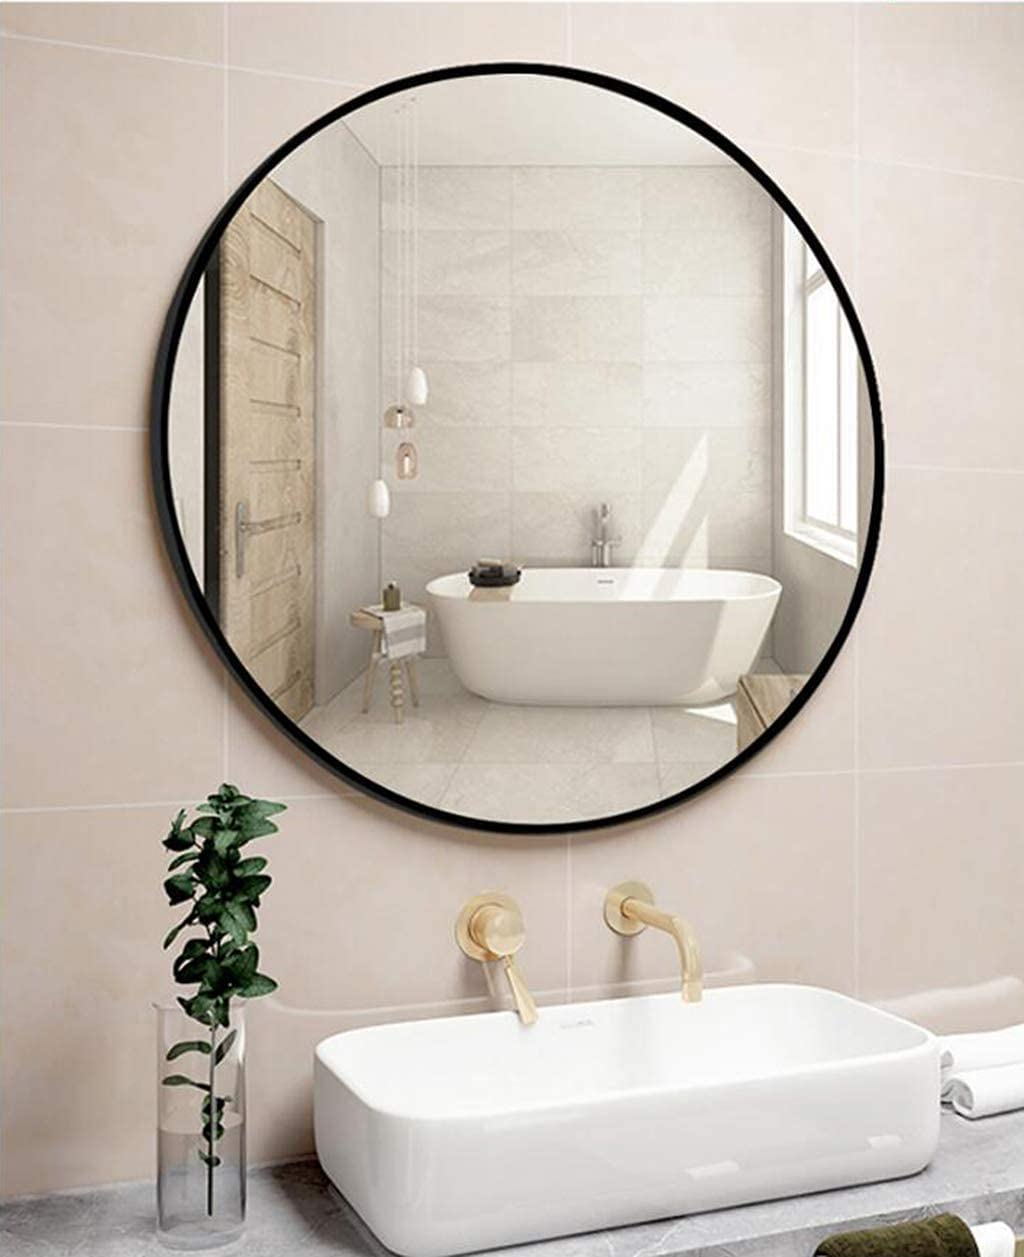 YMLSD Sale Special Price Mirrors Round Wall Mounted Circle Vanity Ranking TOP13 Lar Makeup Mirror